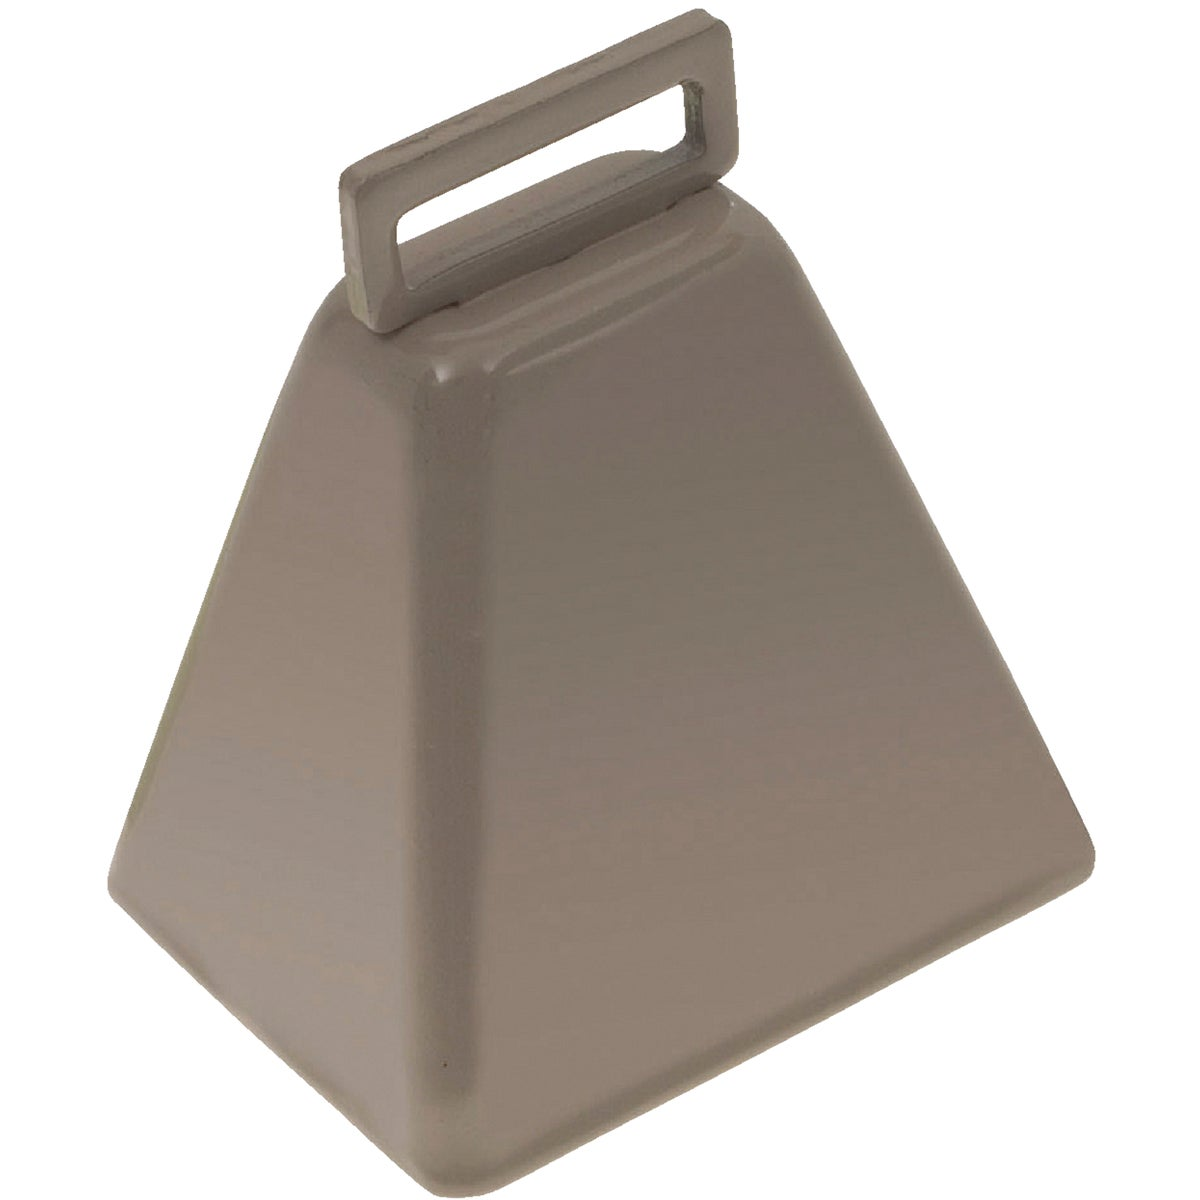 """2-13/16"""" 10LD COW BELL - S90071000-CB900710 by Speeco Farmex"""